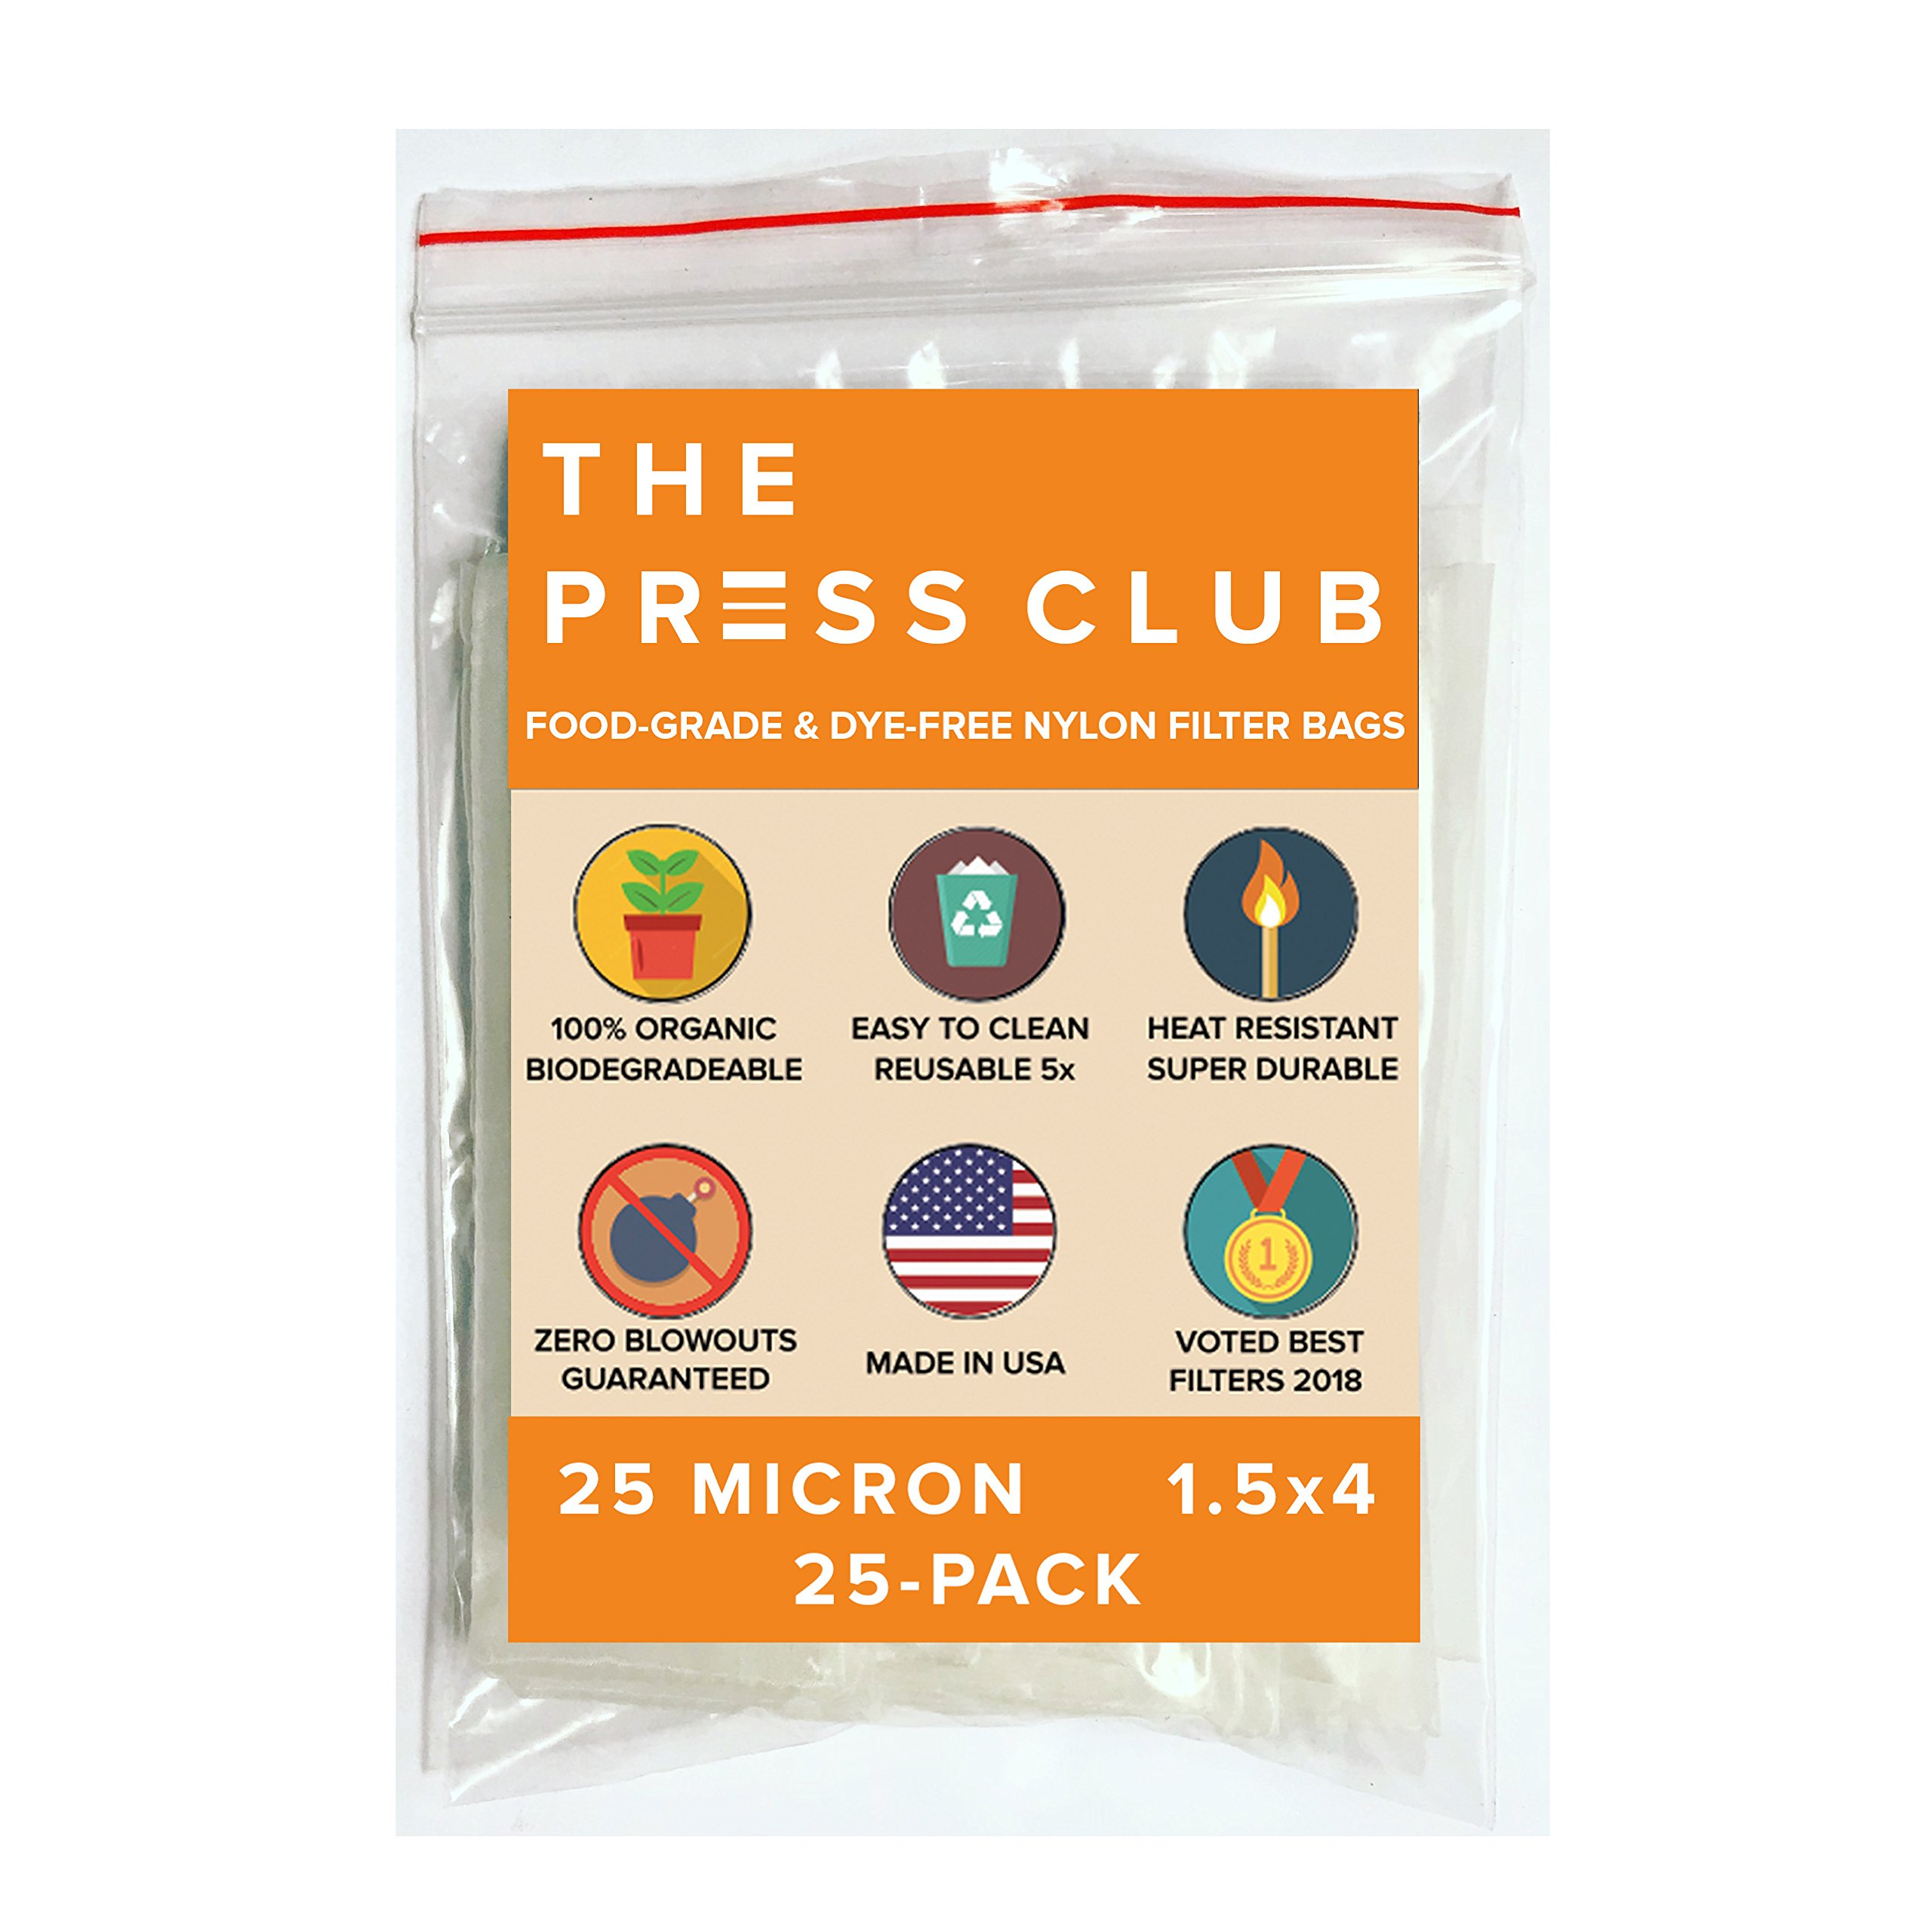 25 Micron | Premium Nylon Tea Filter Press Screen Bags | 1.5'' x 4'' | 25 Pack | Zero Blowout Guarantee | All Micron & Sizes Available